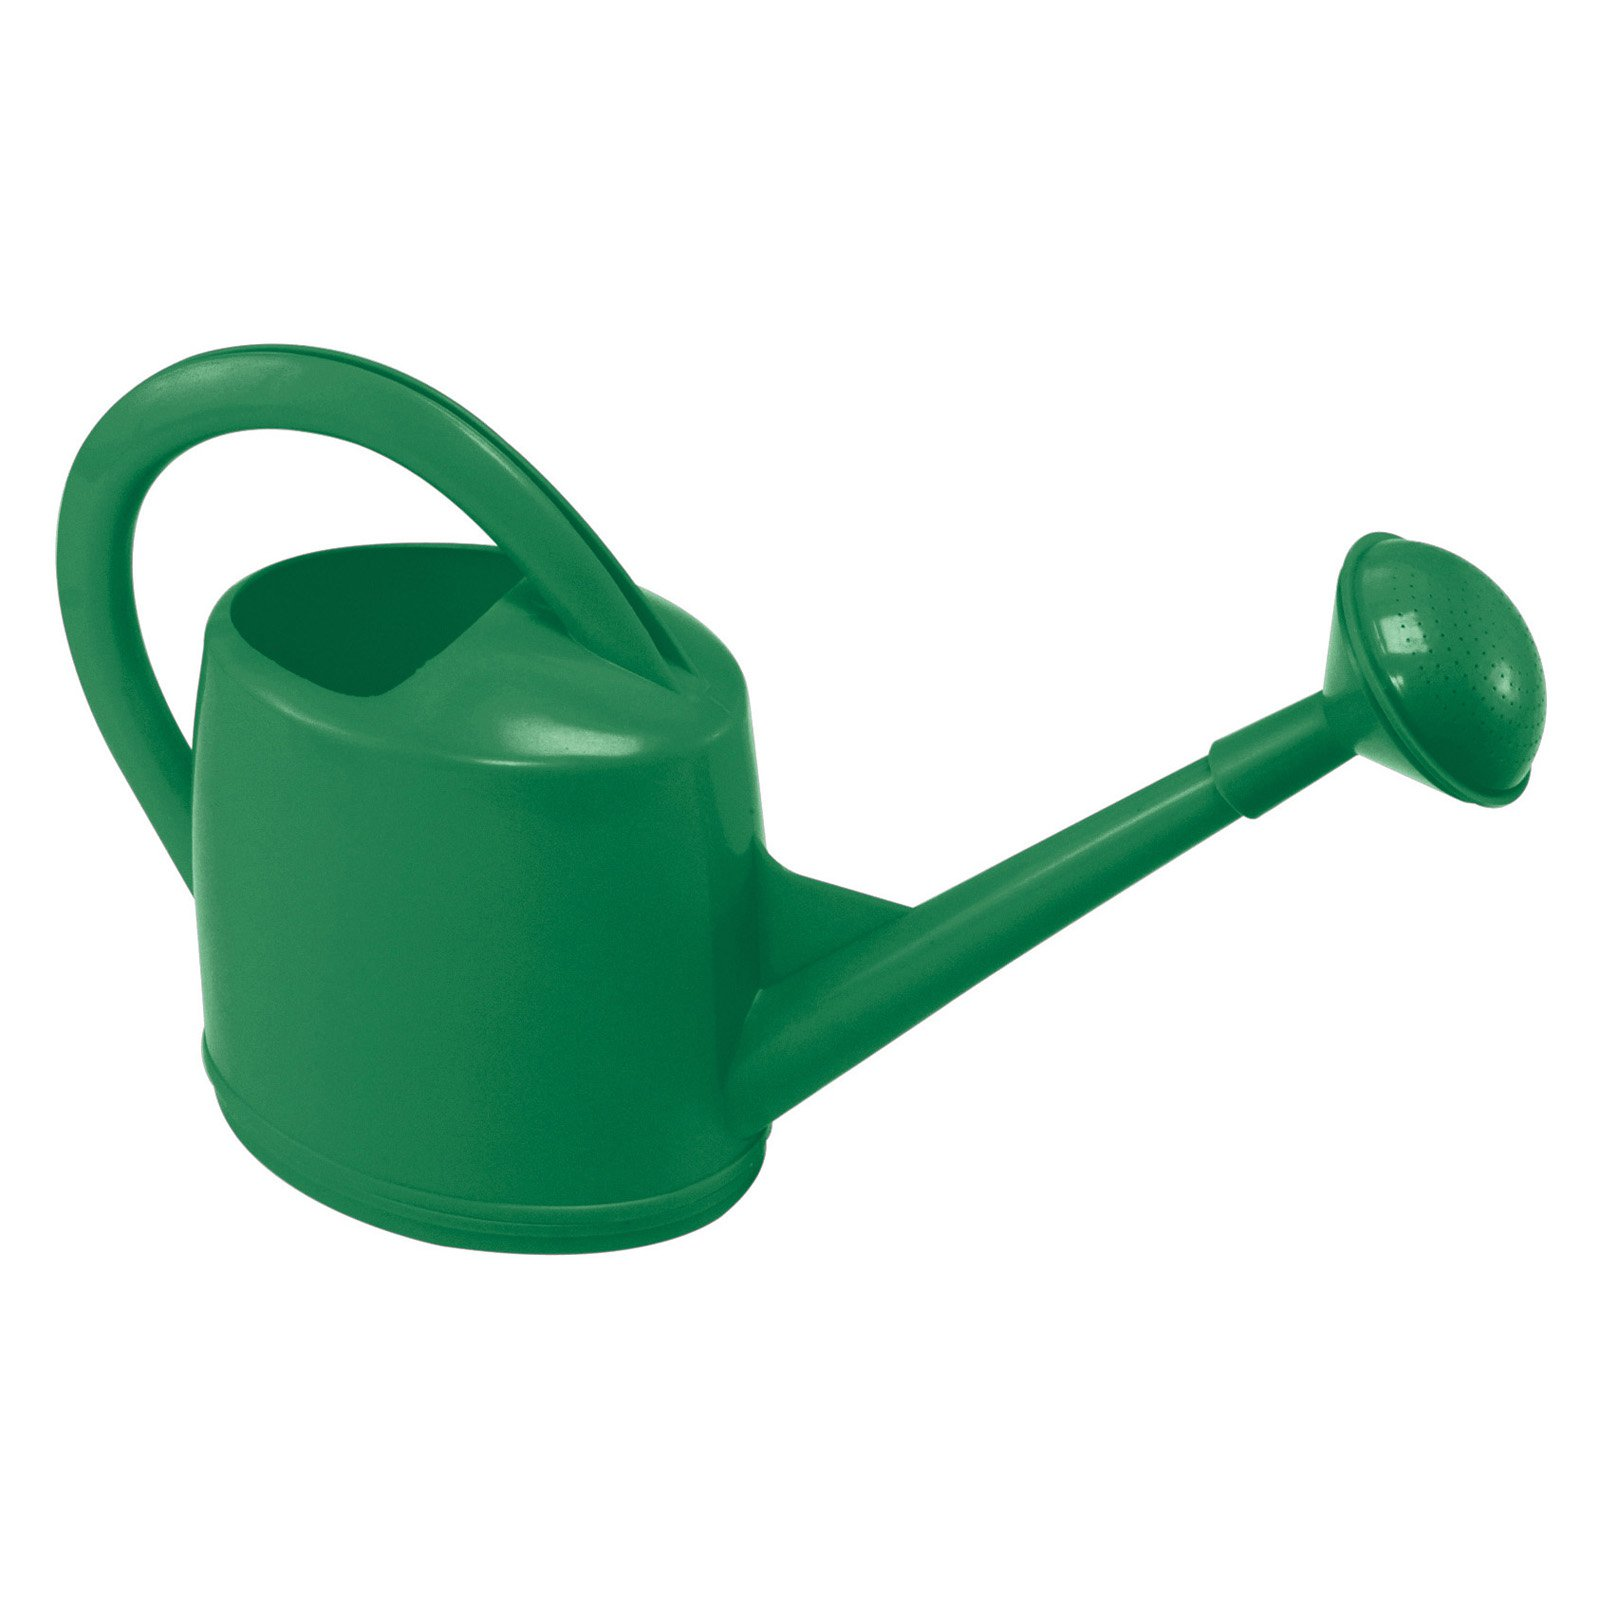 Dramm Injection Molded Plastic Watering Can by Dramm Company